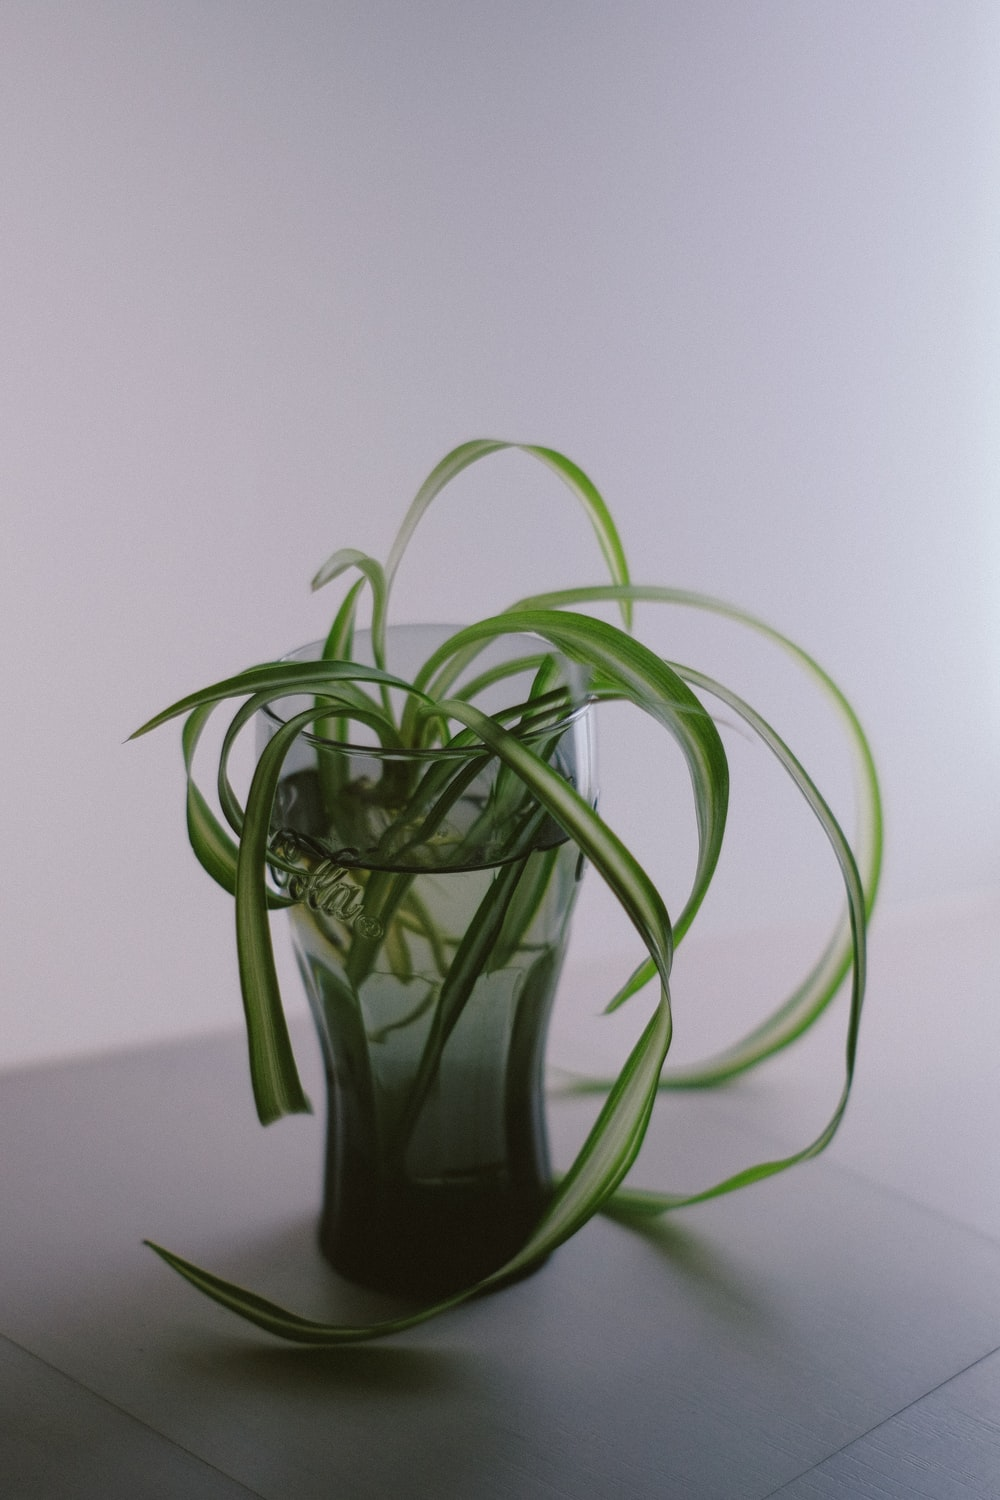 green-leafed plant in glass cup